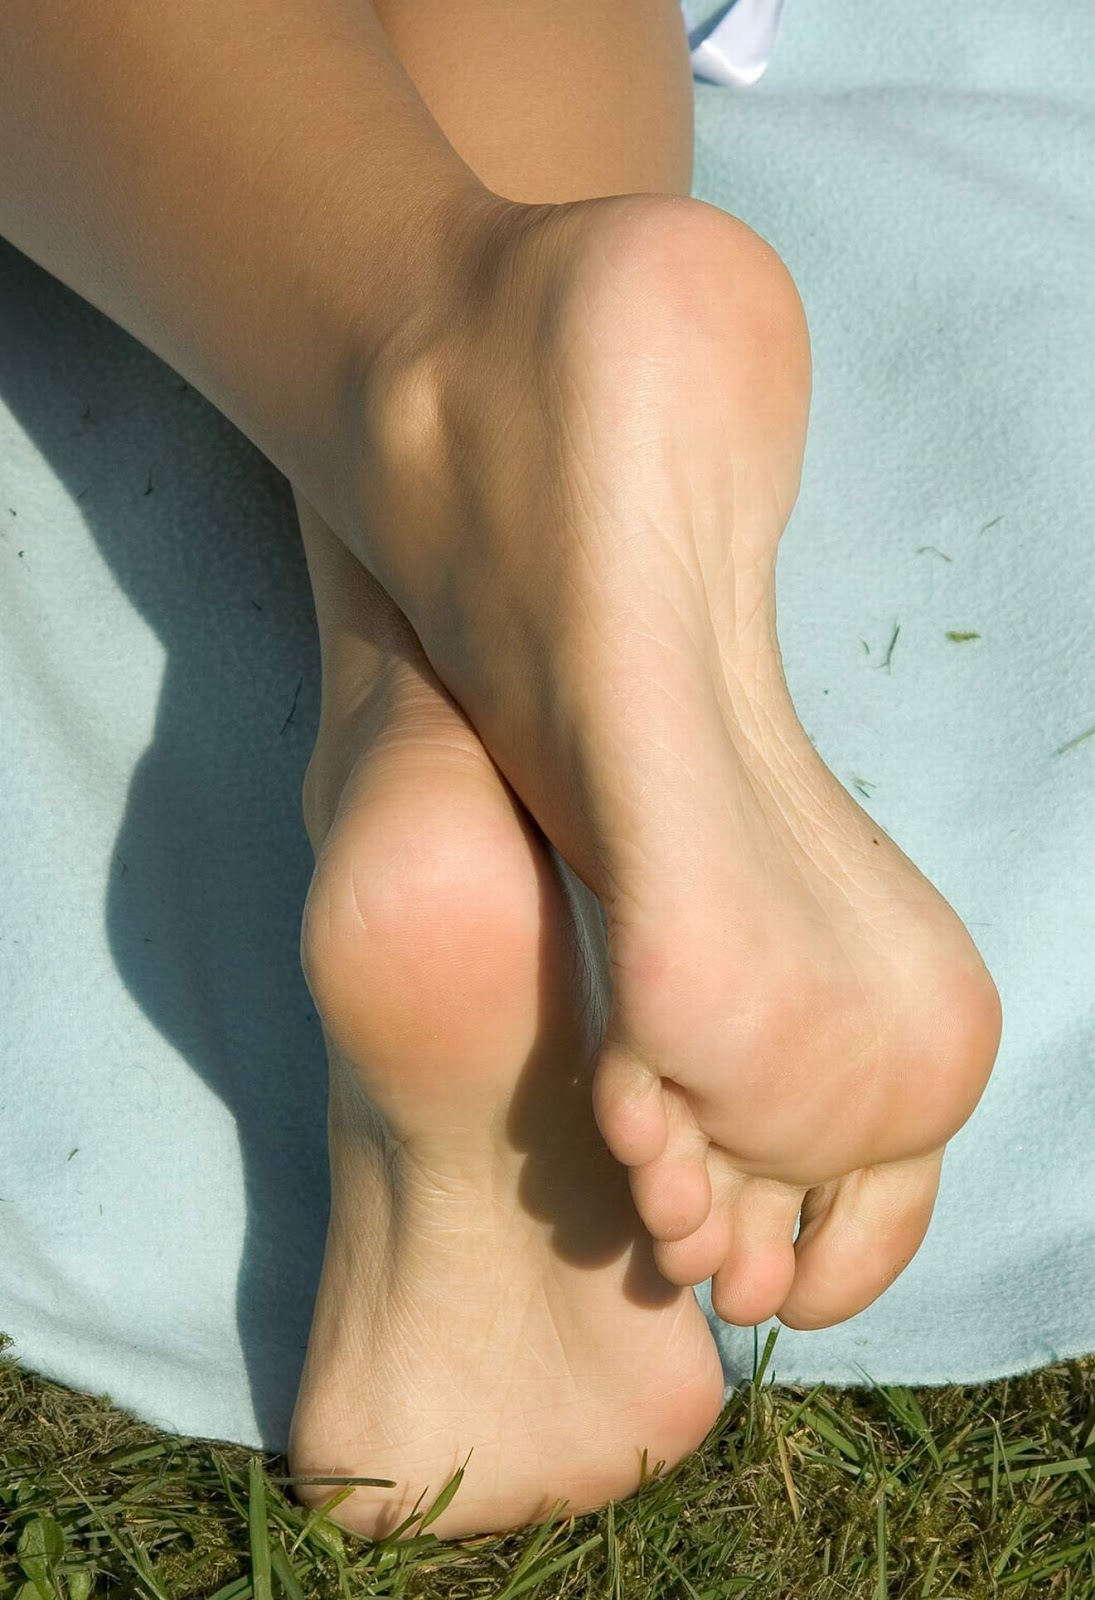 Arizona female fetish foot